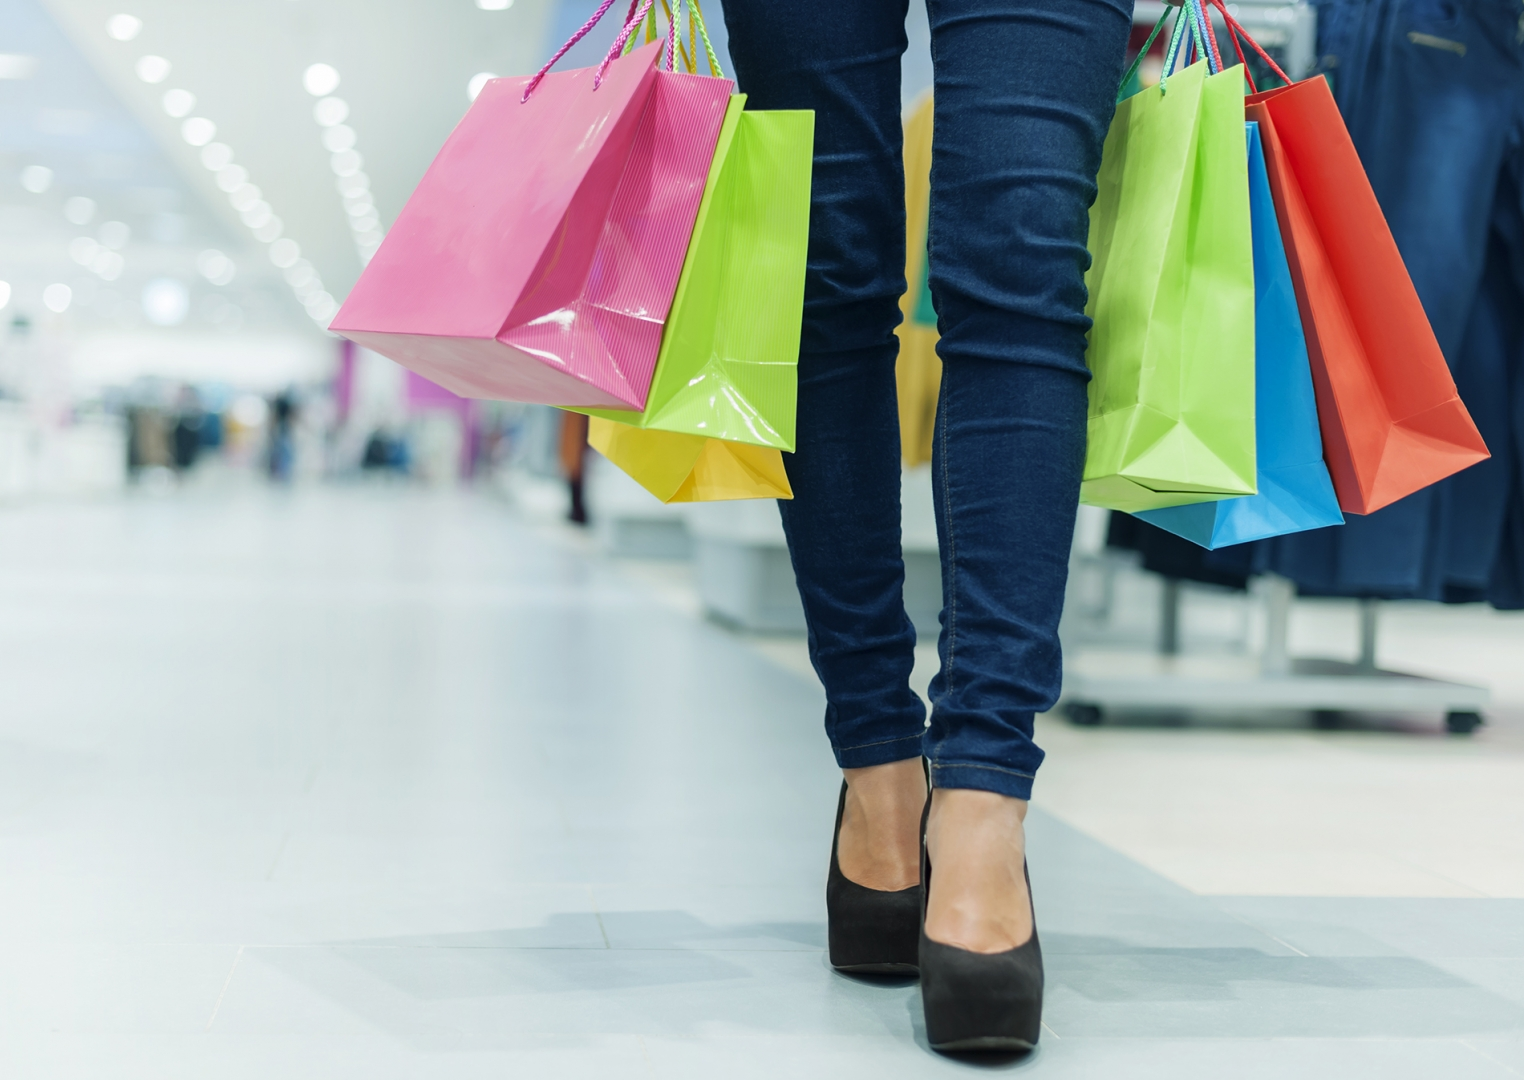 image of bottom half of woman walking through mall carrying shopping bags